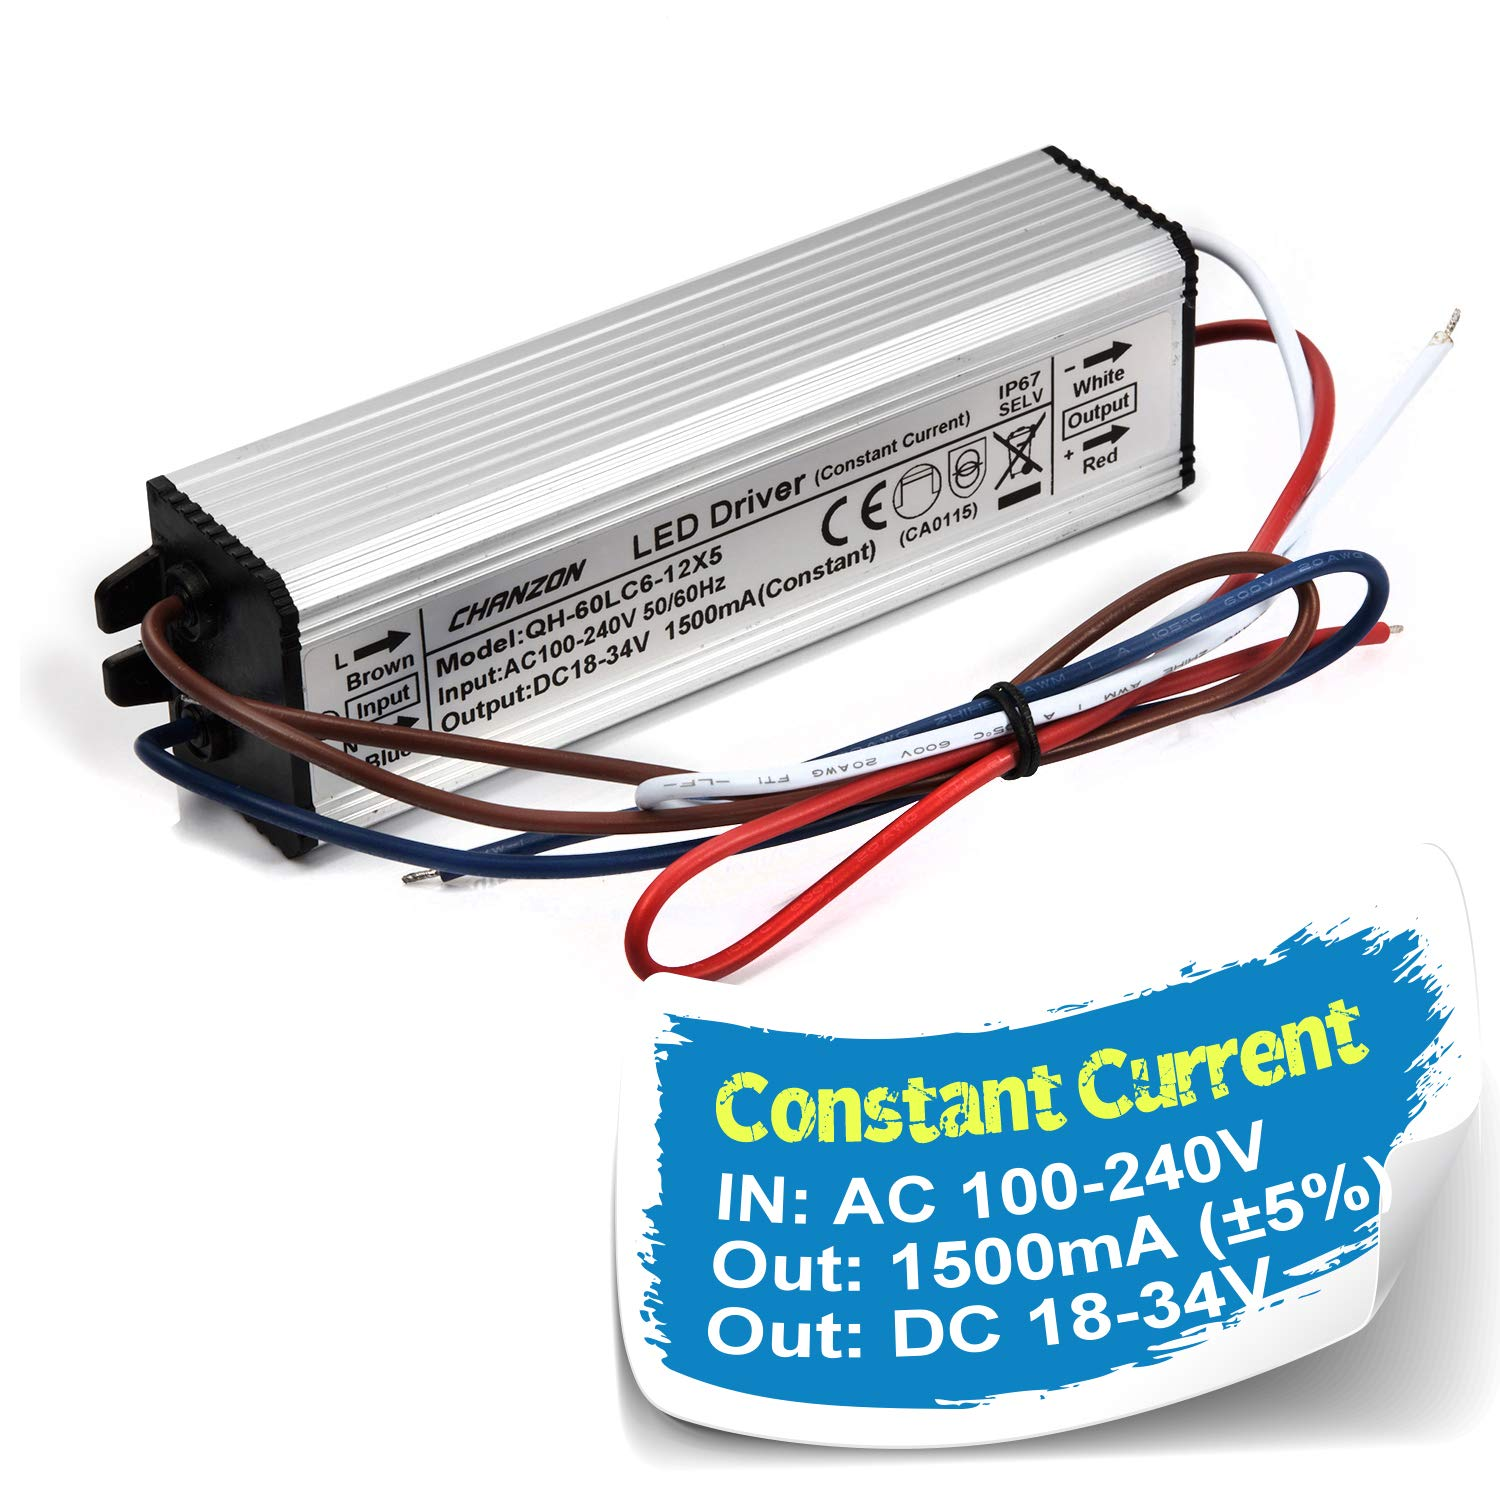 Chanzon Led Driver 1500ma Constant Current Output 18v 39v In85 Powering From Single Aa Cell 277v Ac Dc 6 12 X5 30w 40w 50w 60w Ip67 Waterproof High Power Supply 1500 Ma Lighting